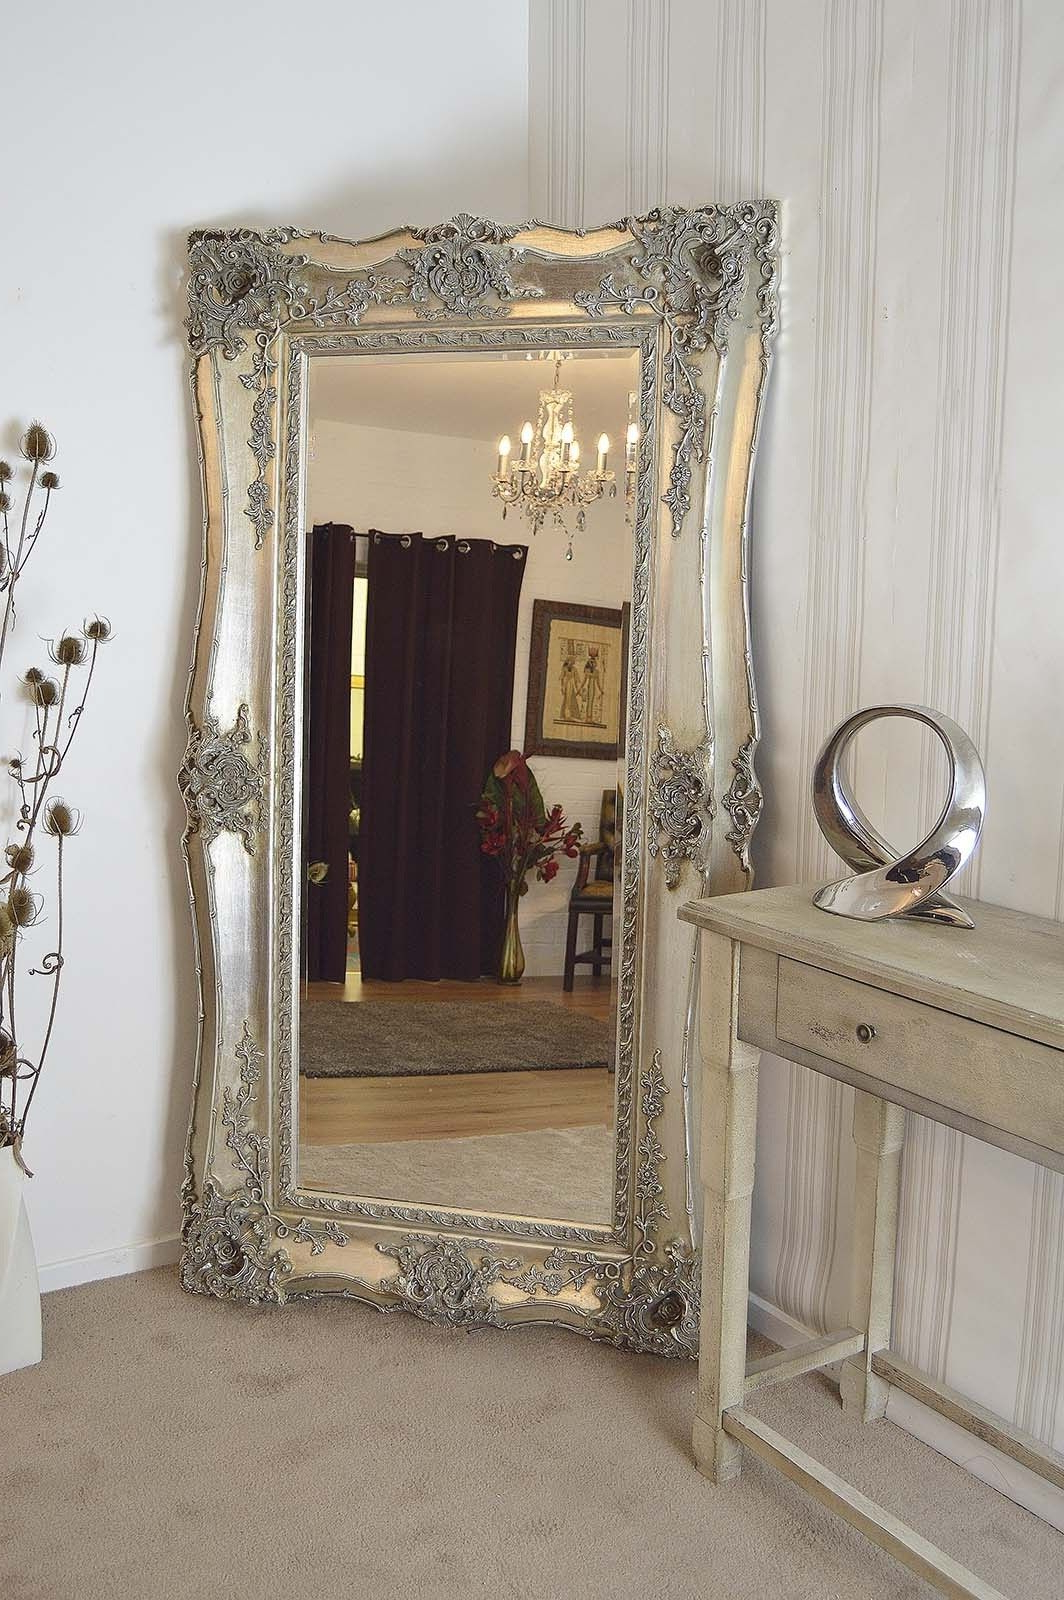 Awesome Full Length Wall Mirrors Homebase (View 1 of 20)